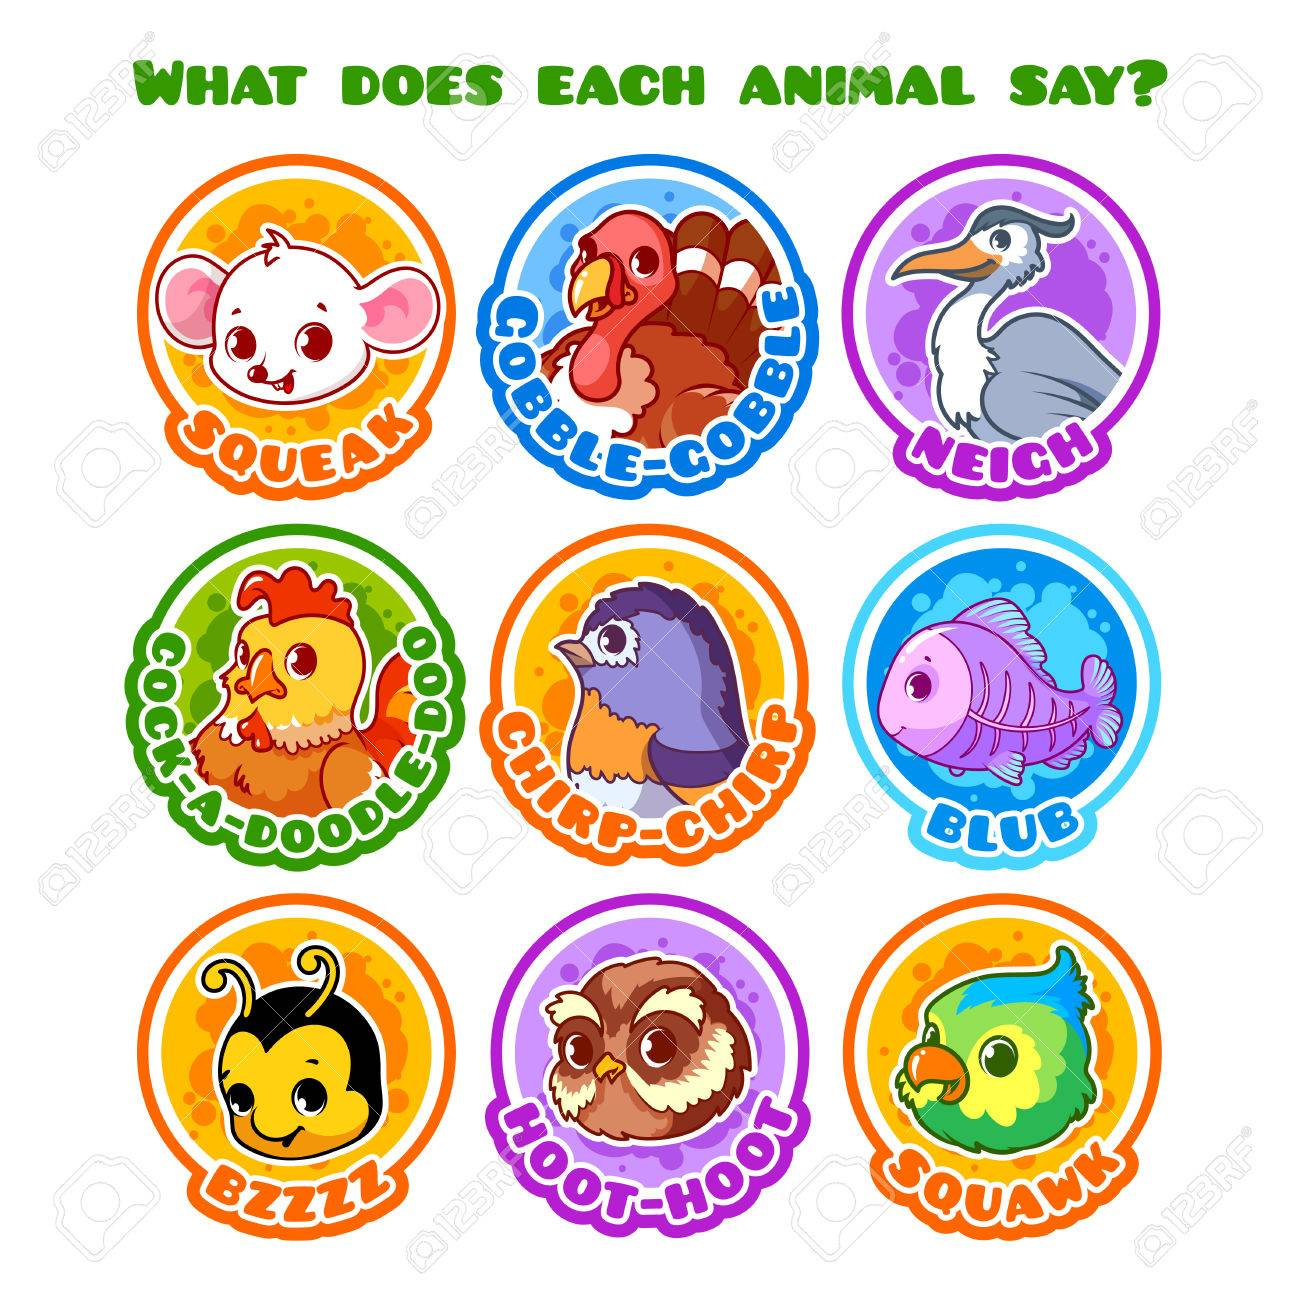 Image of: Photos Set Of Round Stickers With Animals And Their Sounds Stock Vector 56951959 Shutterstock Set Of Round Stickers With Animals And Their Sounds Royalty Free